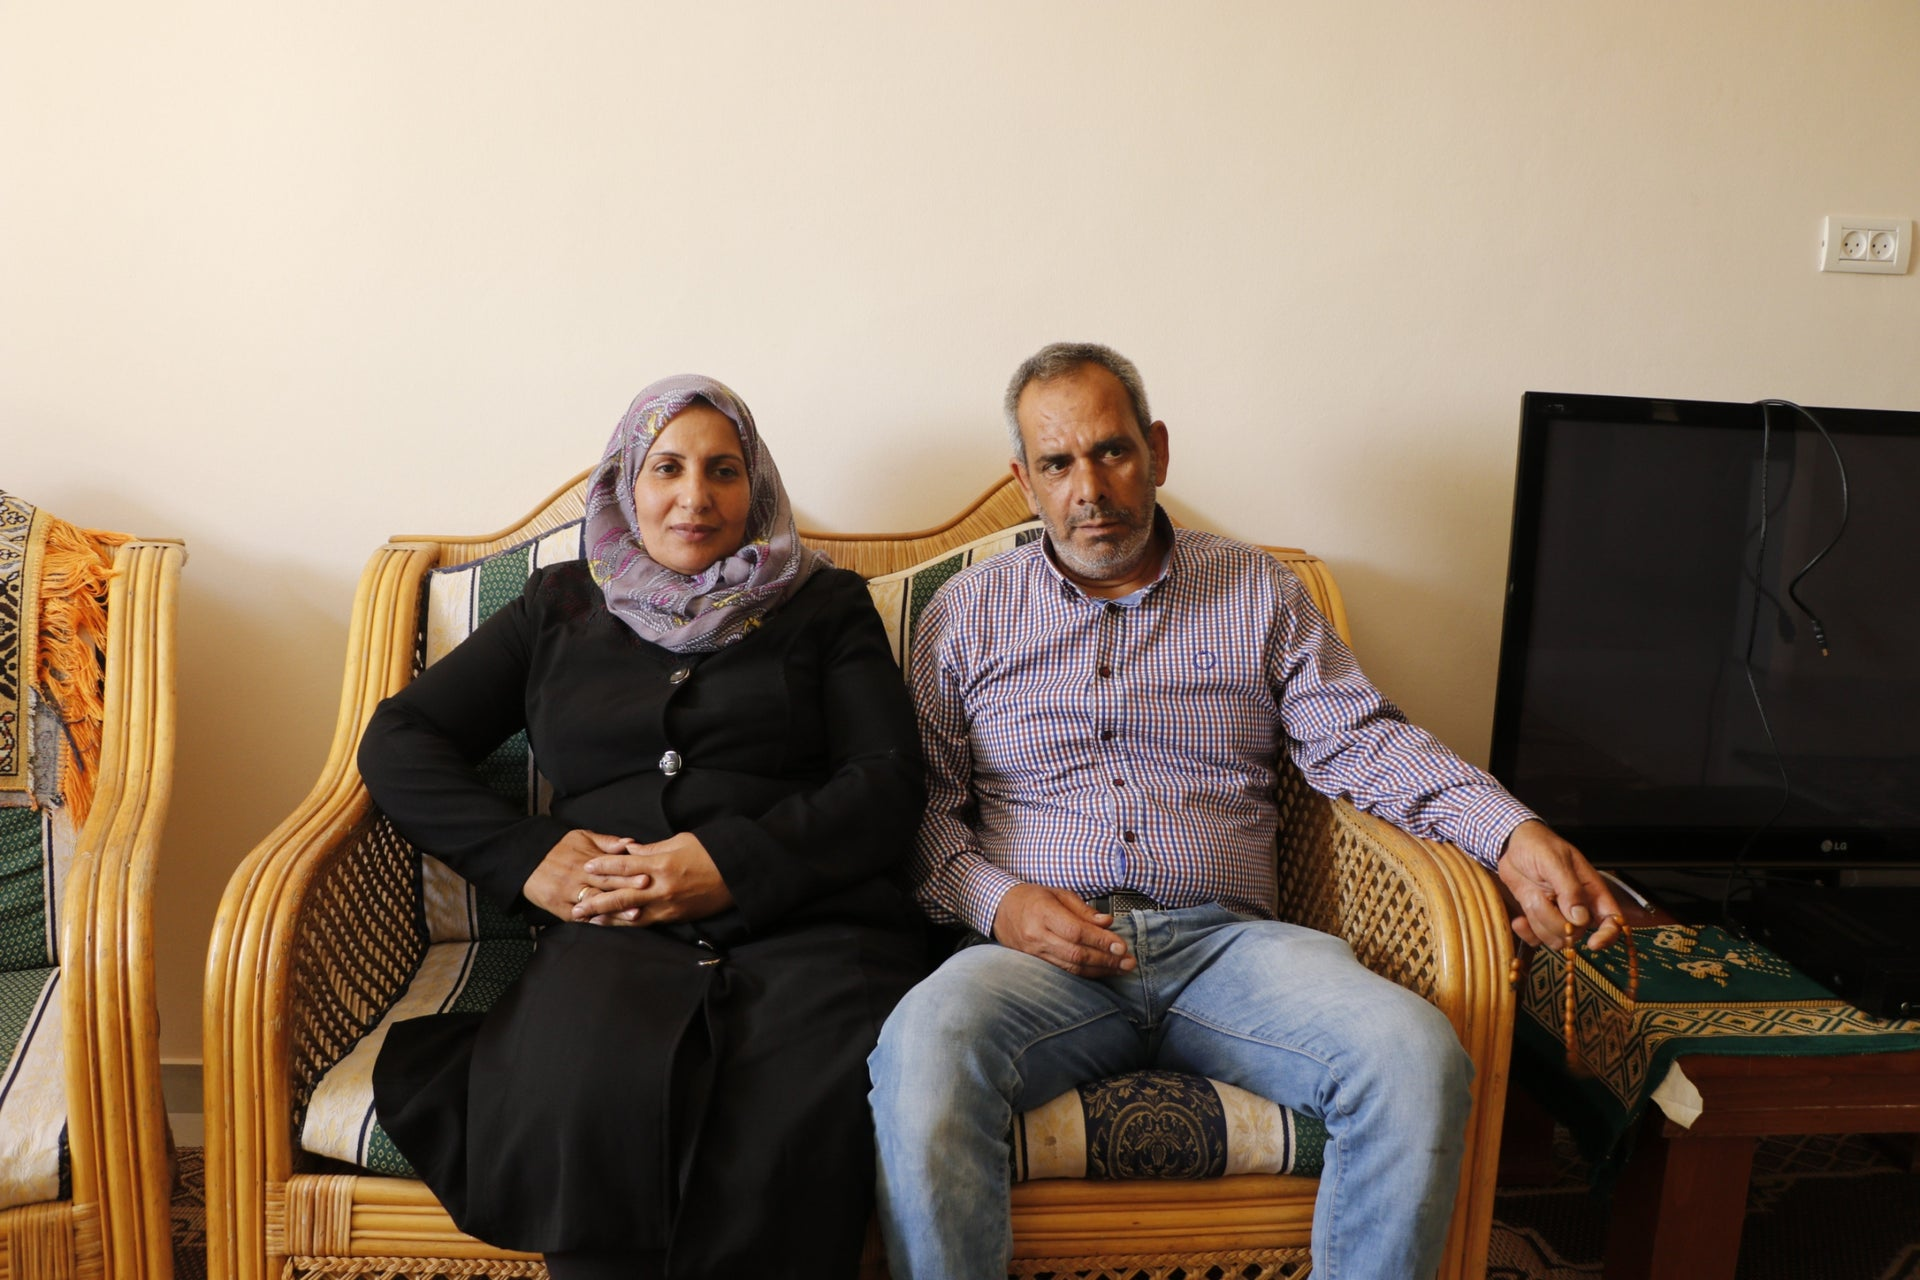 Hamis Ziada and his second wife, Donya Daher. He purchased the home his extended family lived in with money saved from his work as an electrician at the Egged bus cooperative in Holon.